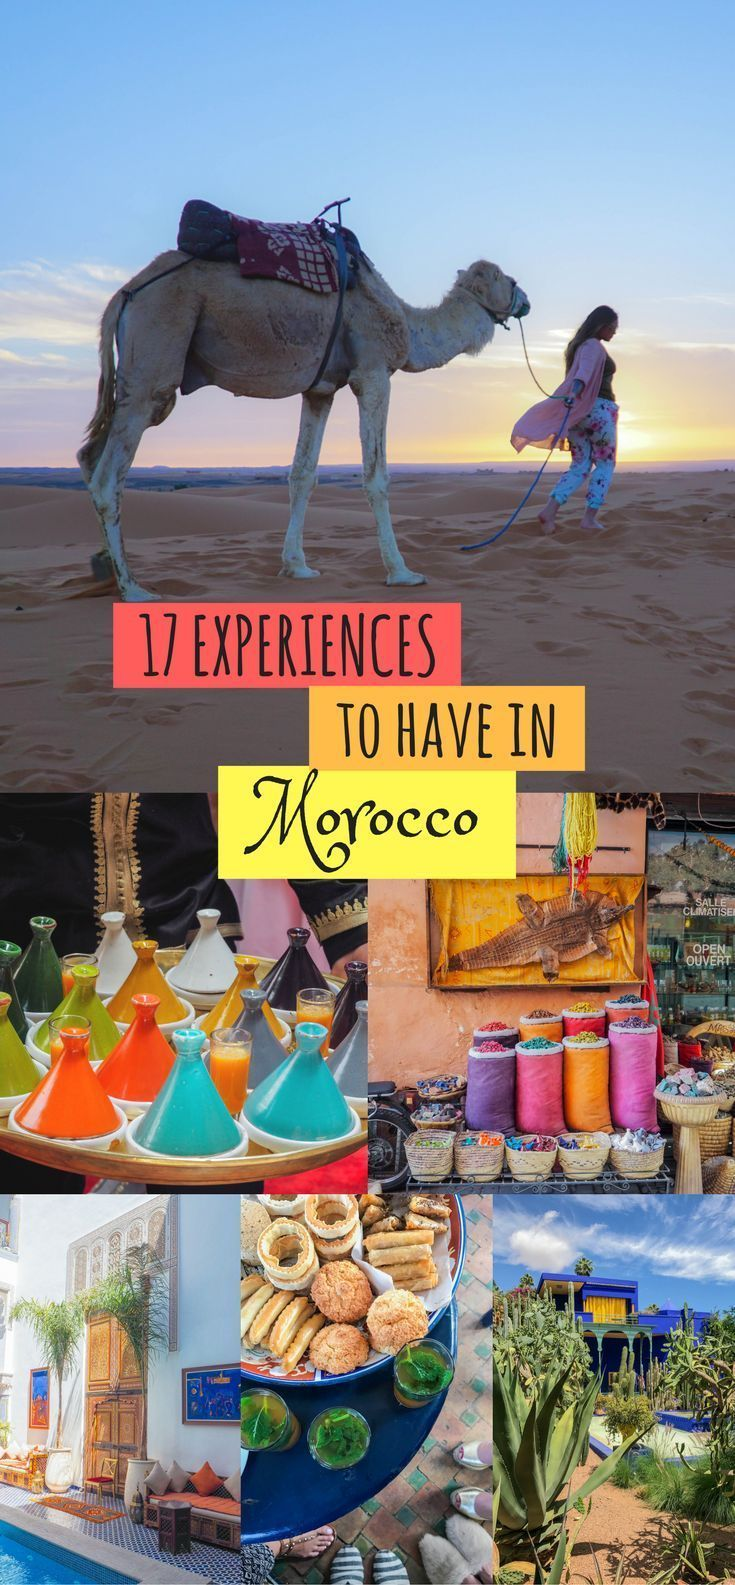 17 Experiences to Have in Morocco #spanishthings